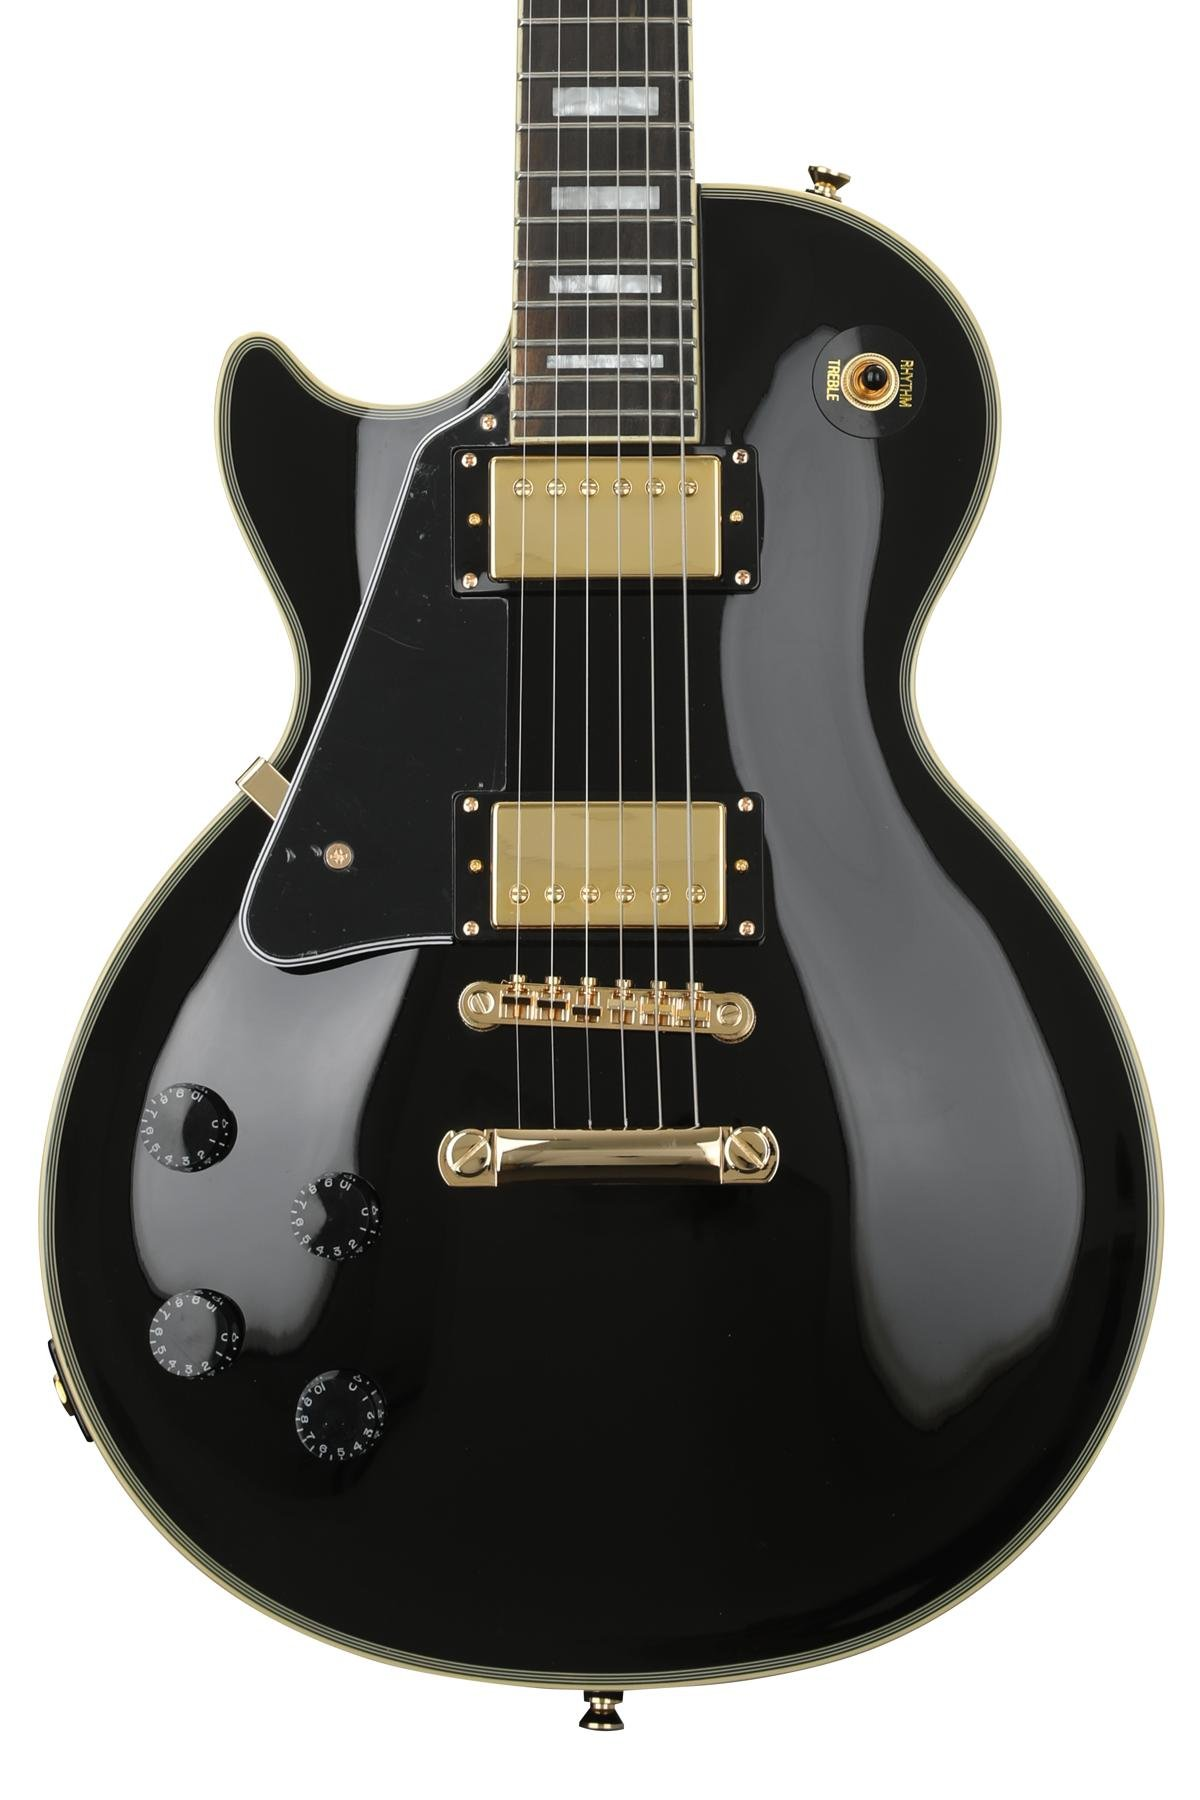 Jackson Slxlh X Series Soloist Left Handed Trans Black Sweetwater Js22 7 Wire Diagram Epiphone Les Paul Custom Pro Ebony